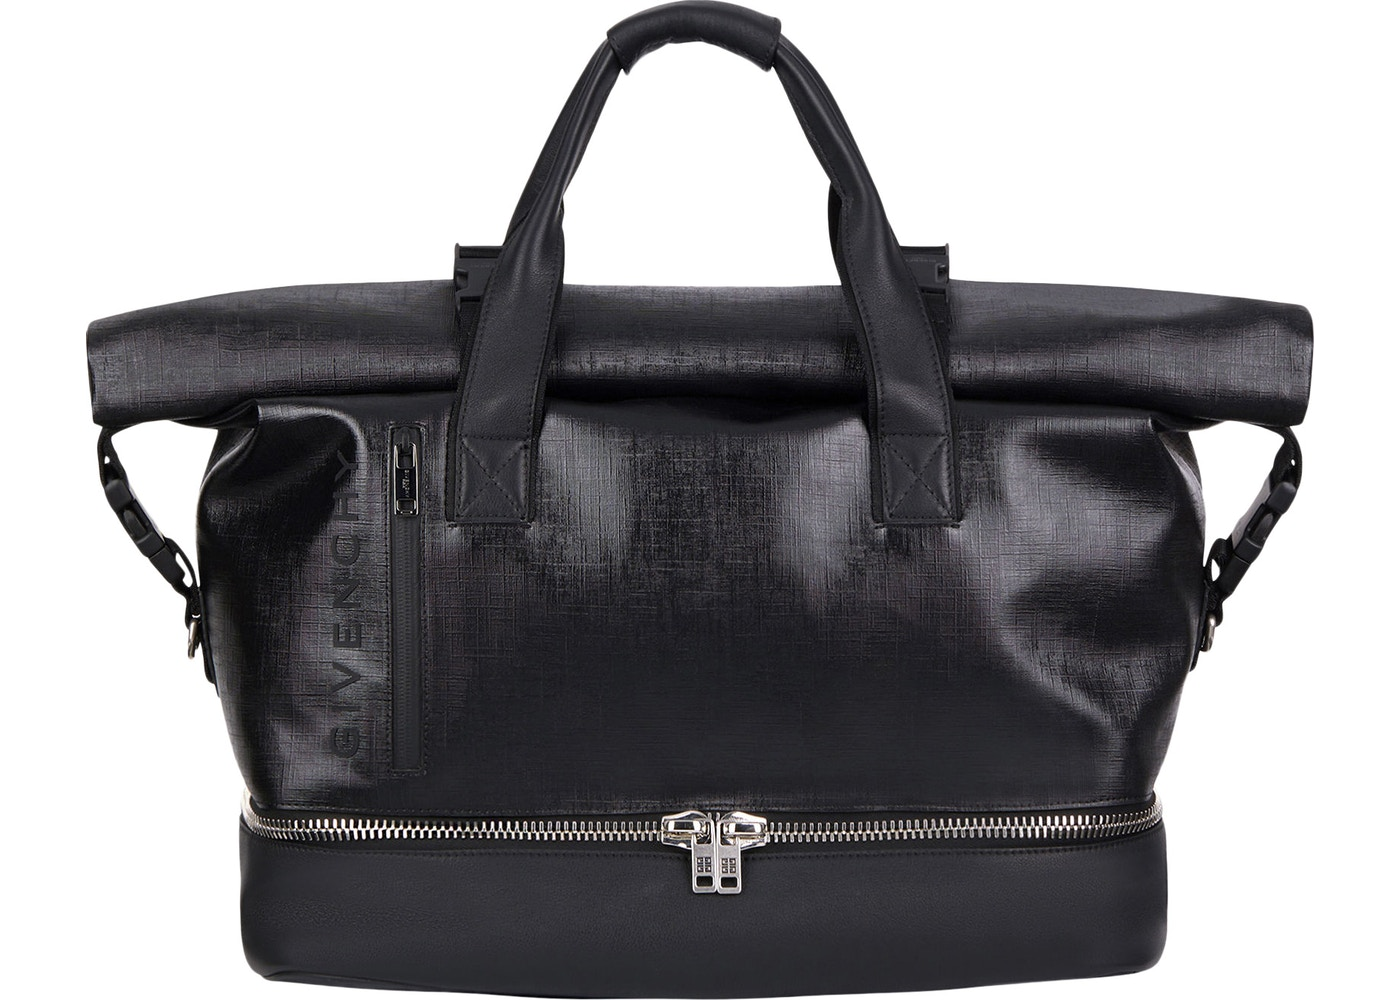 8953d3c3ddce Givenchy Jaw Weekender Bag Canvas Leather Silver-tone Black